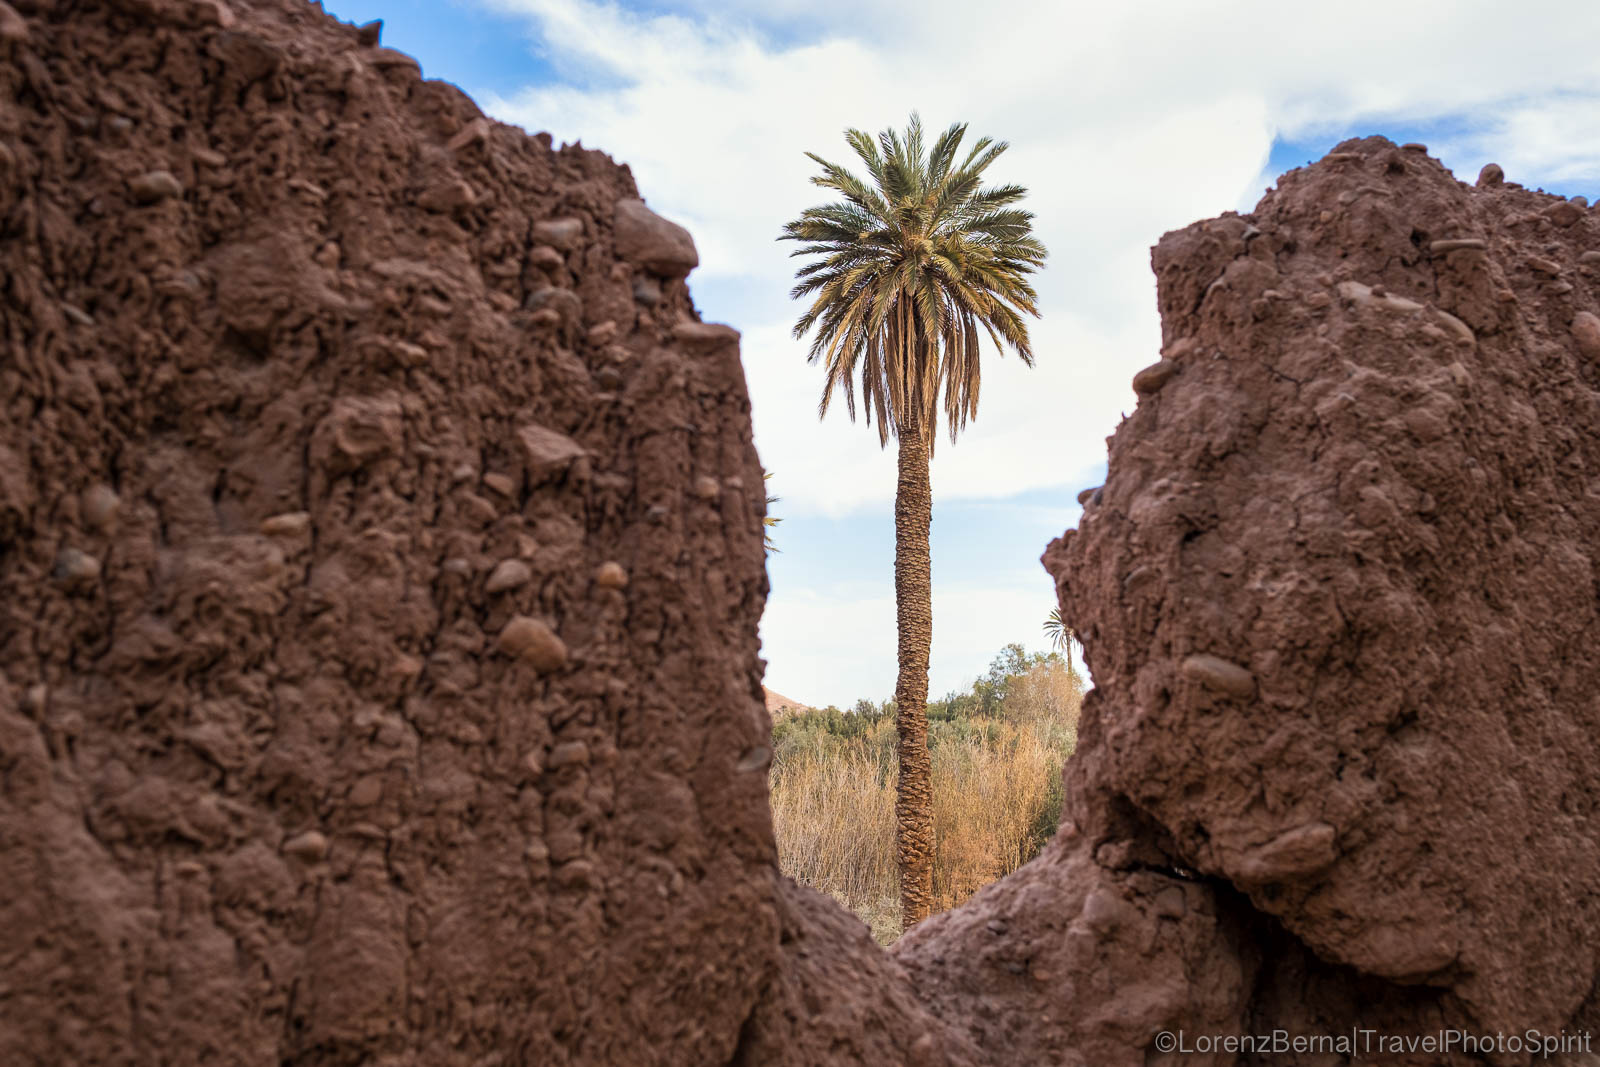 Palm tree in between two walls of clay and straw in Skoura, Morocco